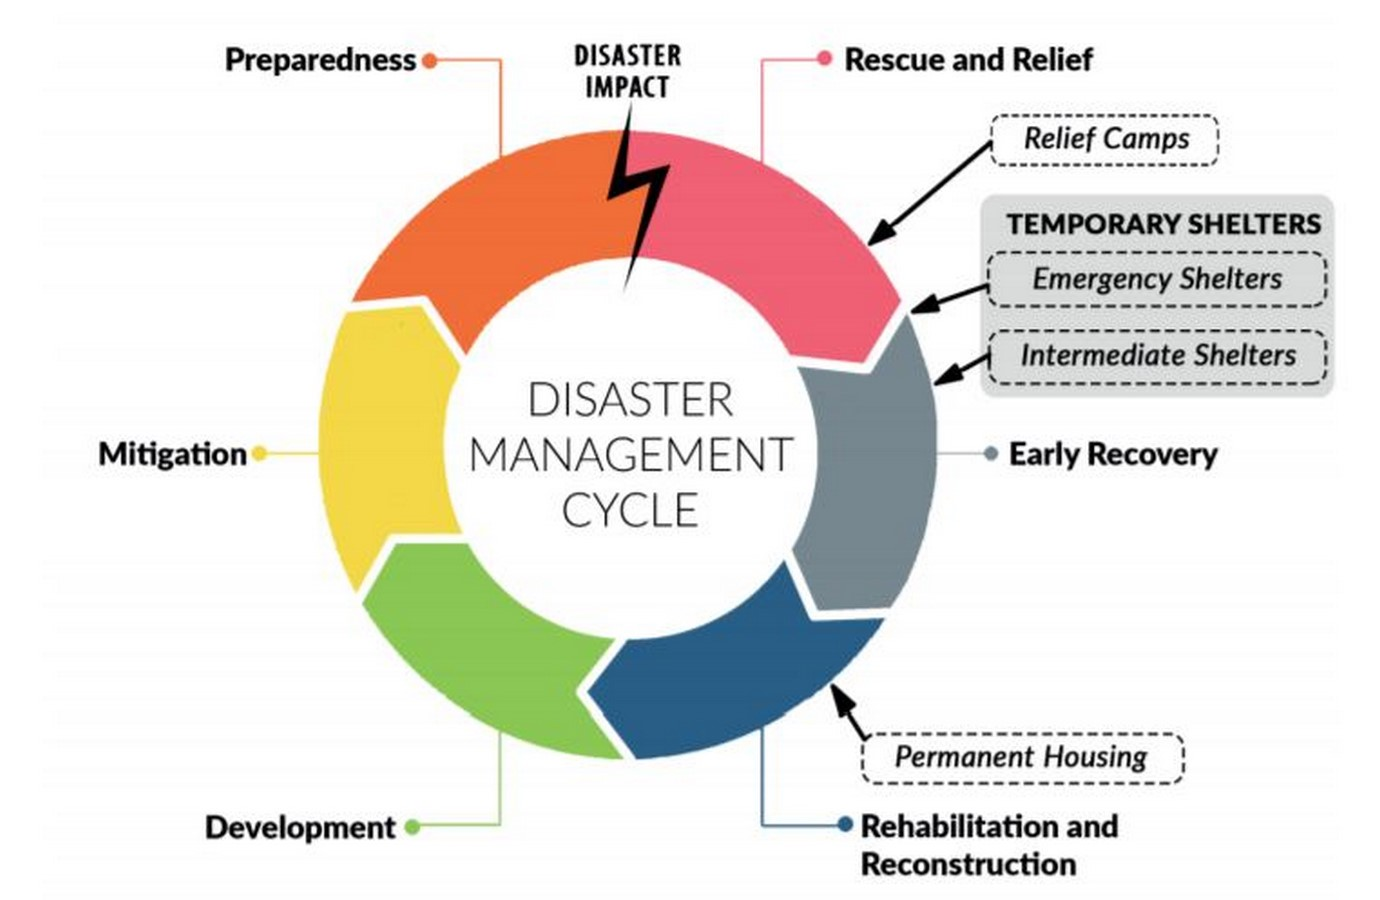 A review of Temporary architecture for disaster management in rural areas - Sheet1